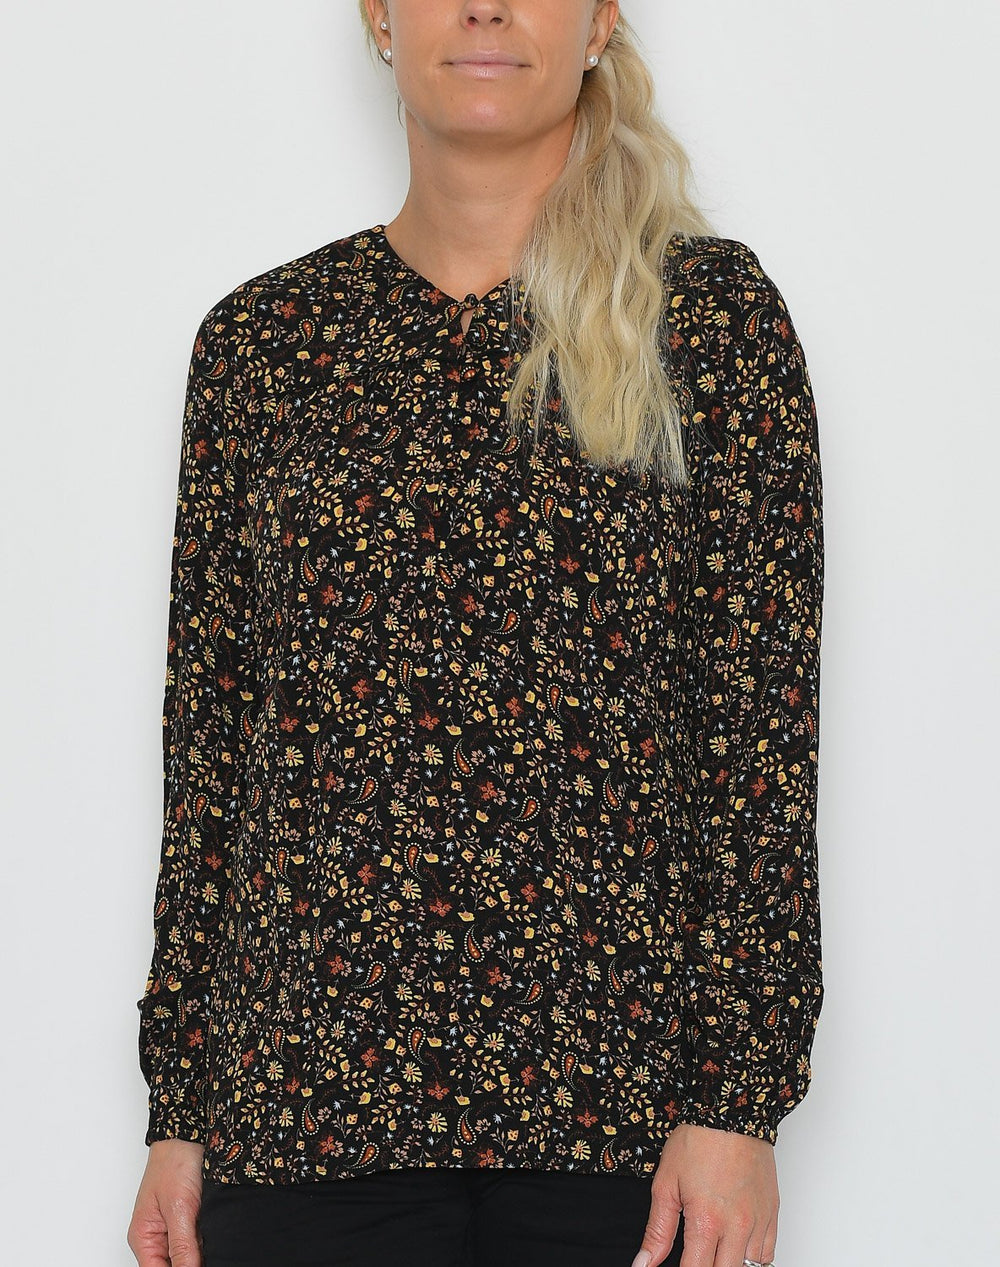 Ofelia Jessice shirt golden combi - Online-Mode